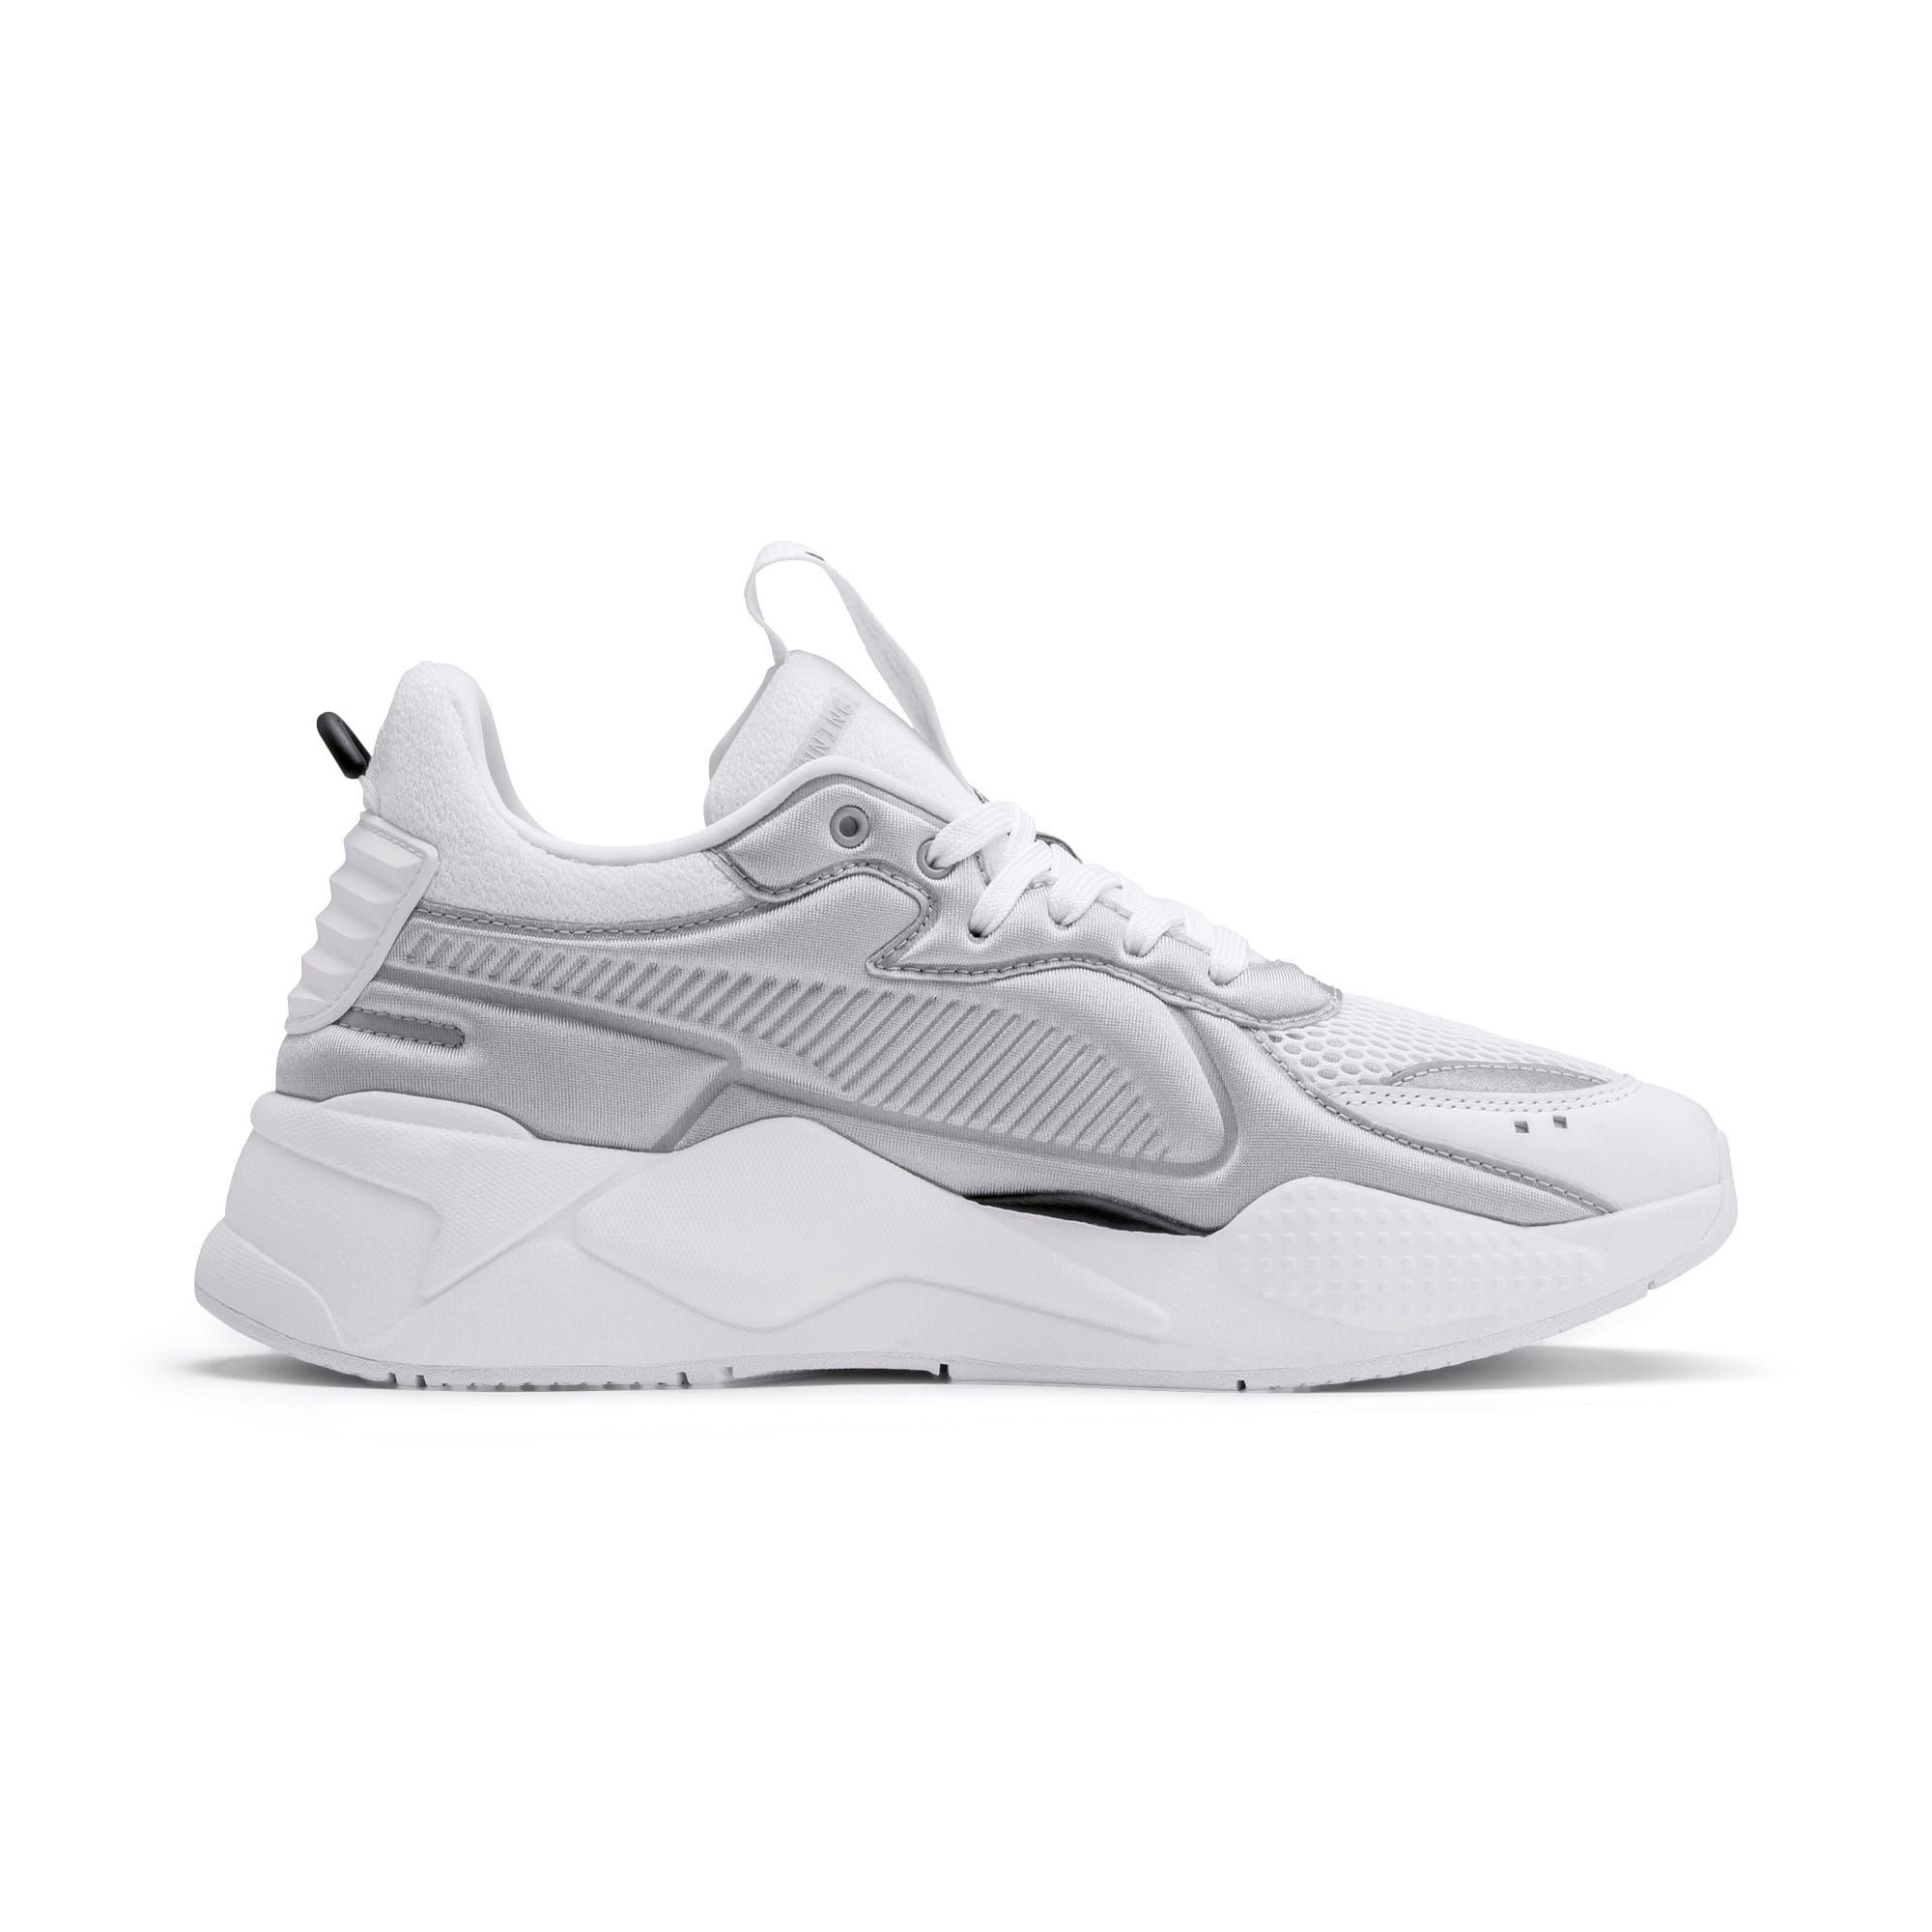 PUMA Rs-X Softcase Trainers in Grey size 10 | Classic ...